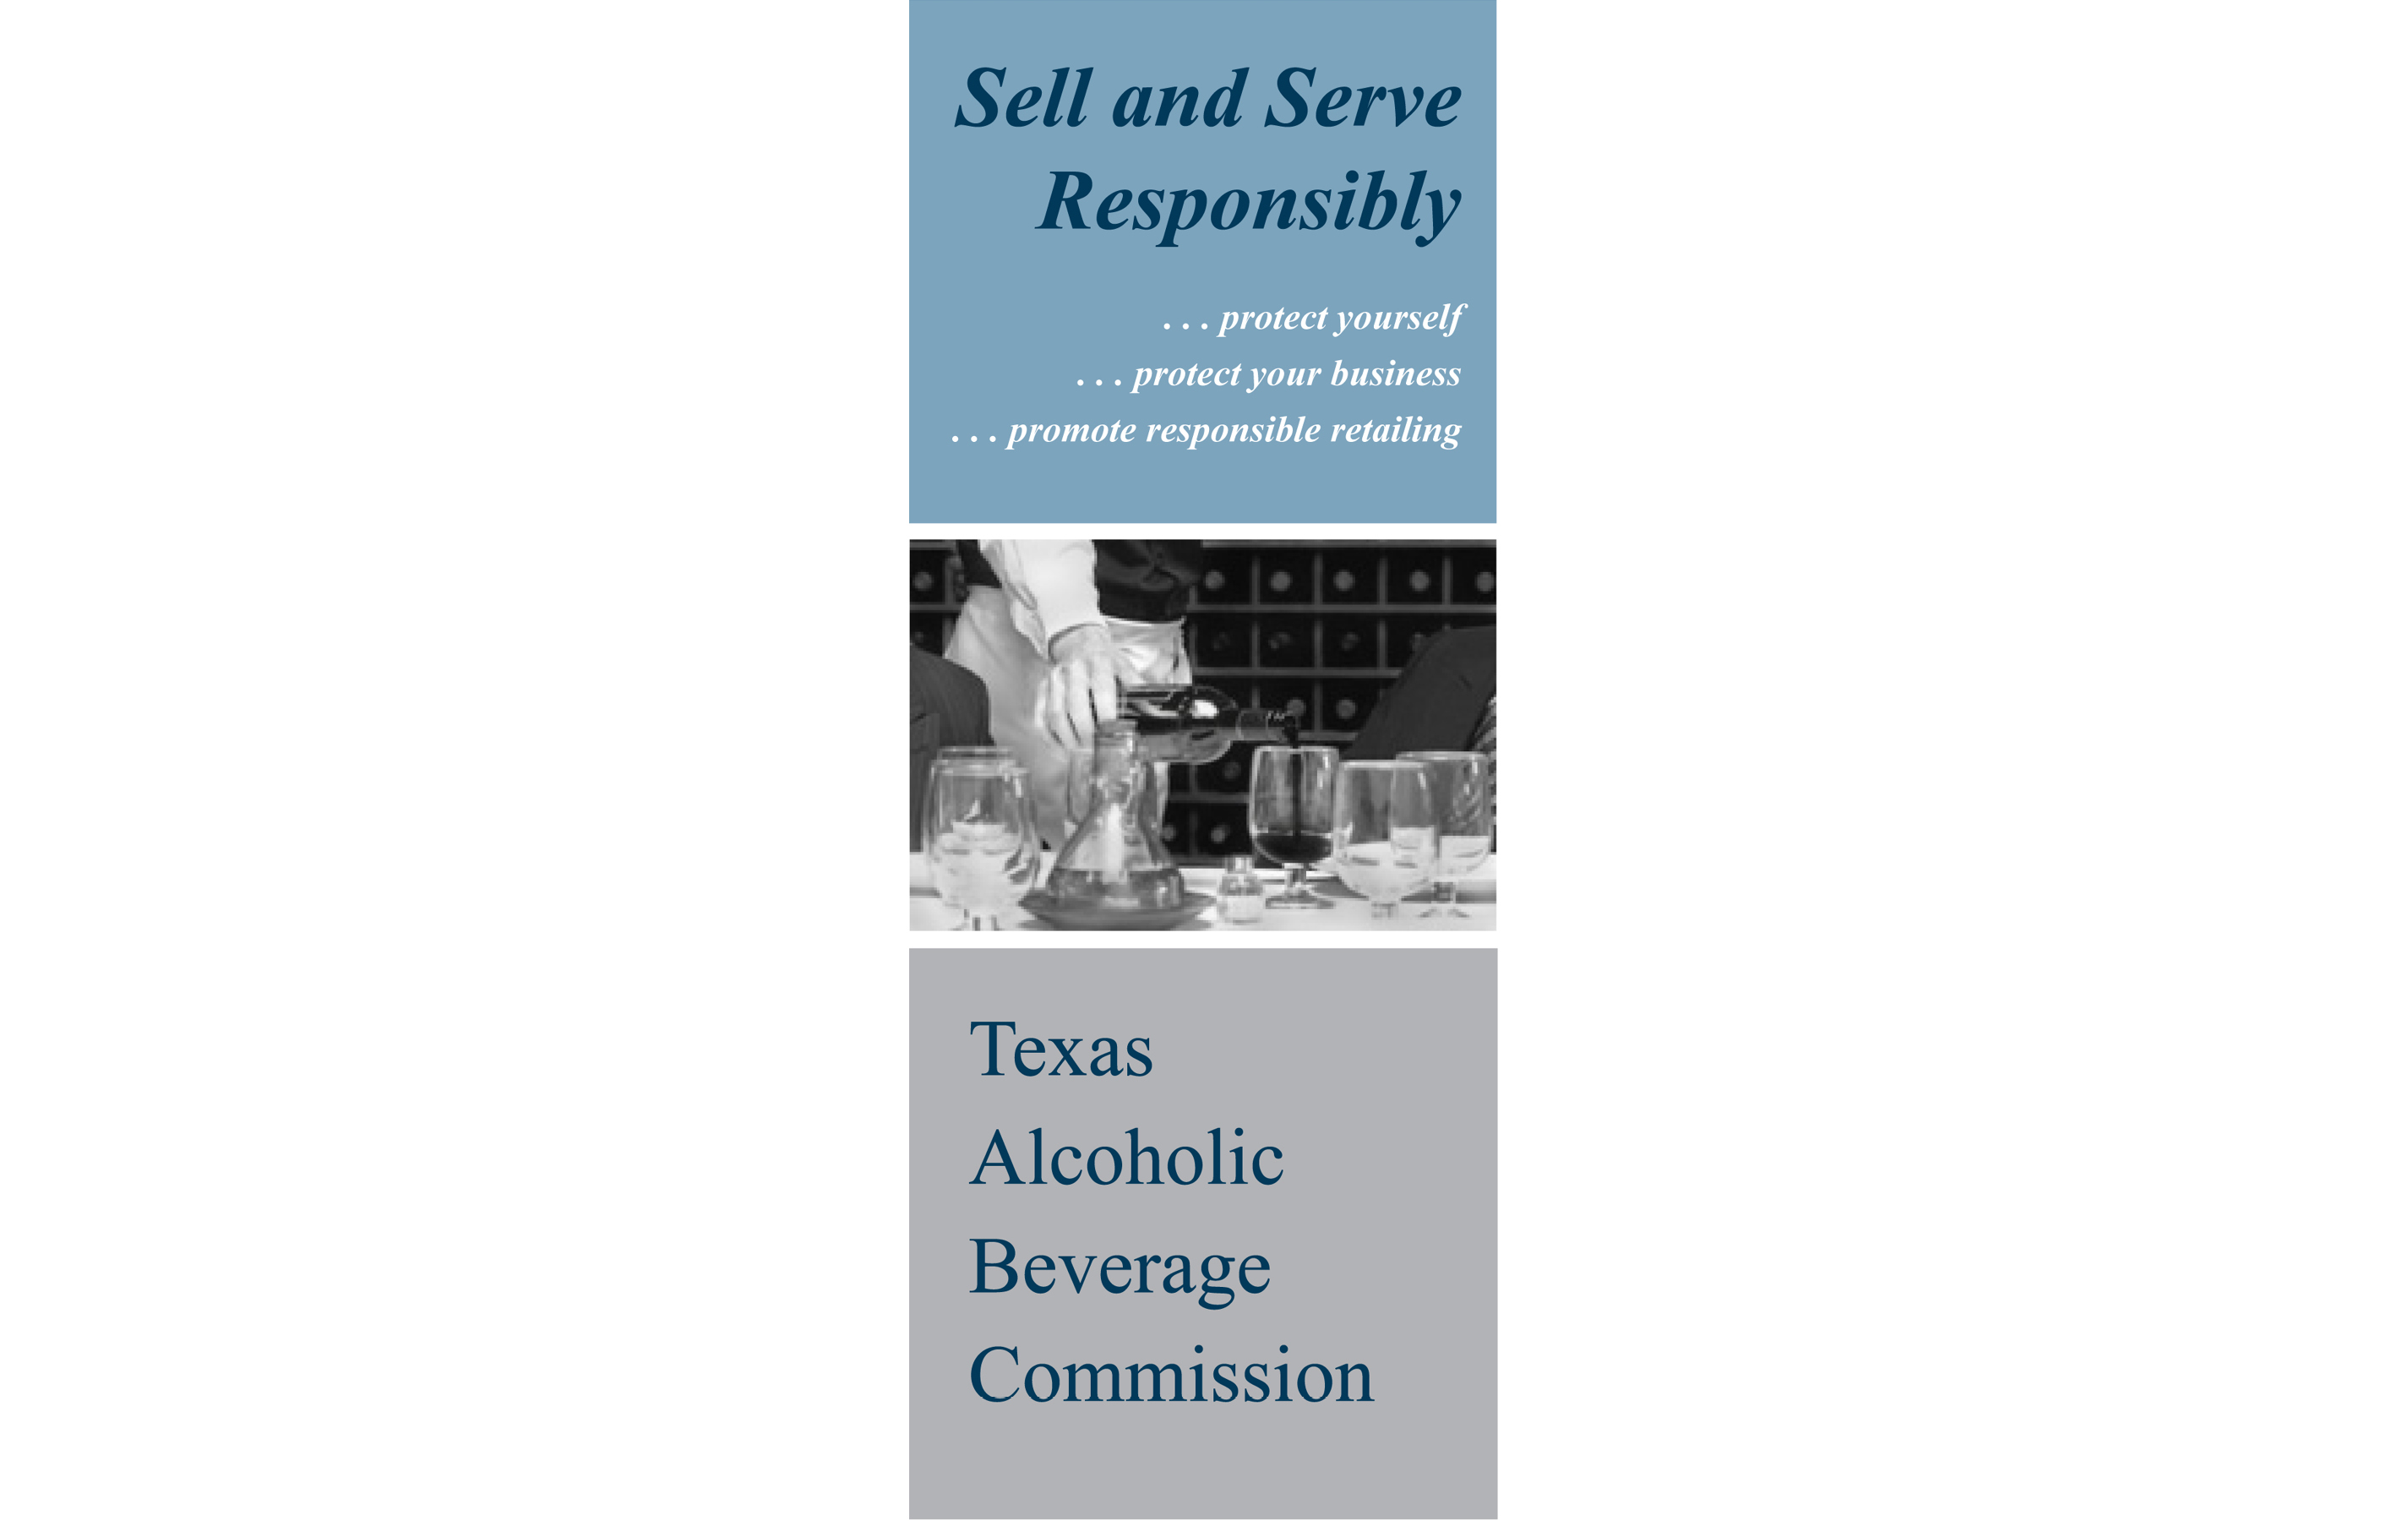 Sell and Serve Responsibly Brochure